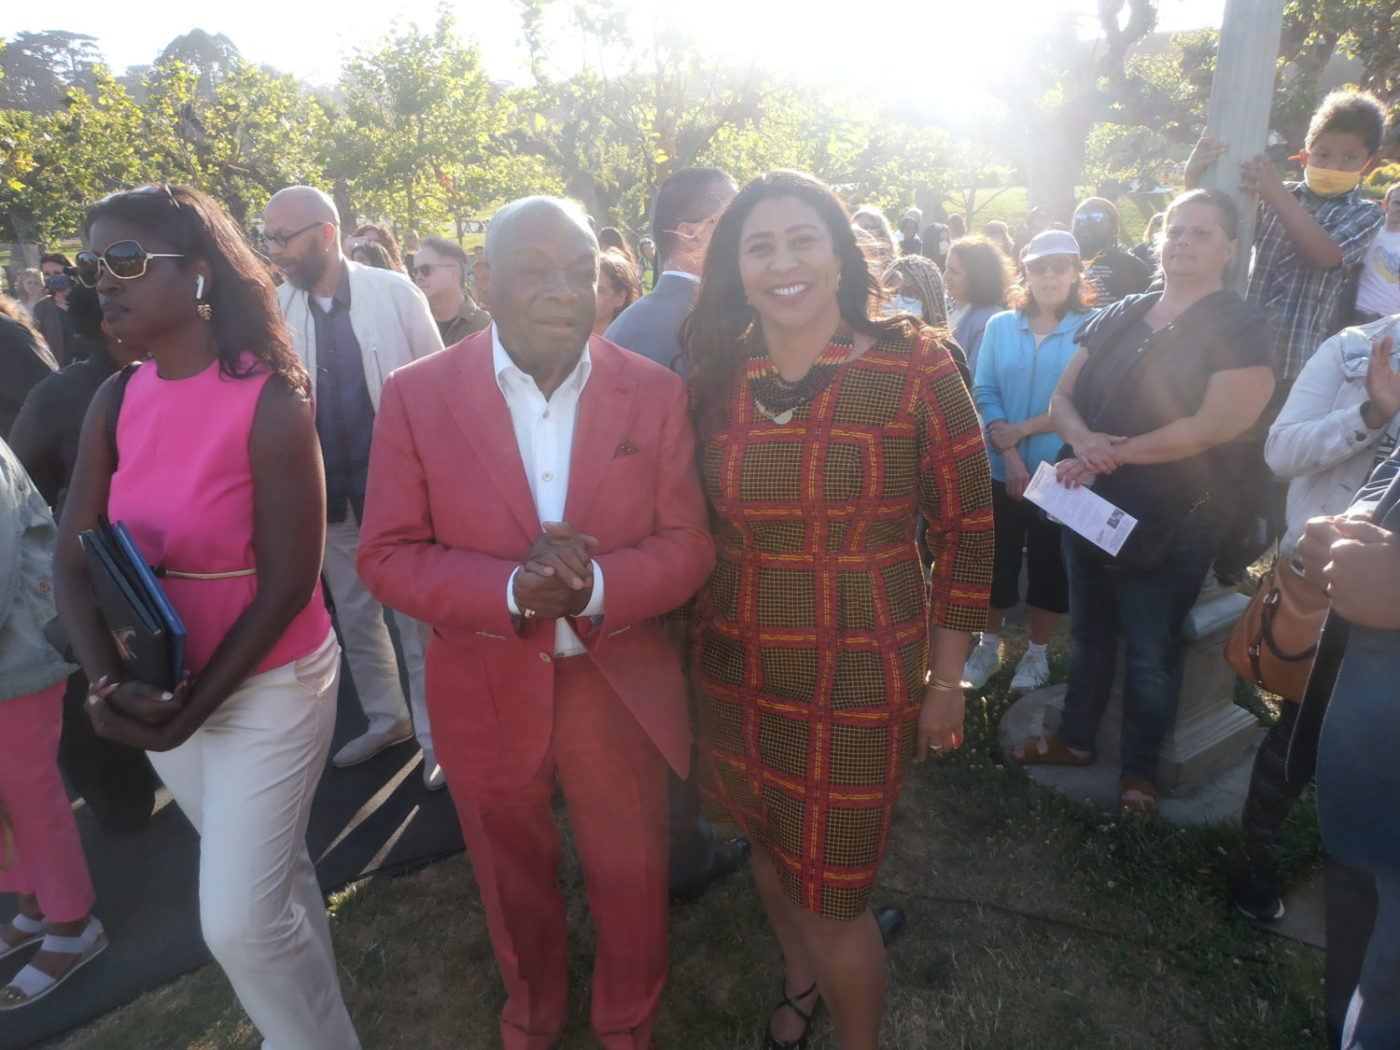 Willie-Brown-and-London-Breed-Monumental-Reckoning-in-Golden-Gate-Park-by-Jahahara-061821-1400x1050, The Juneteenth Holiday and Kujichagulia, or self-determination, Culture Currents